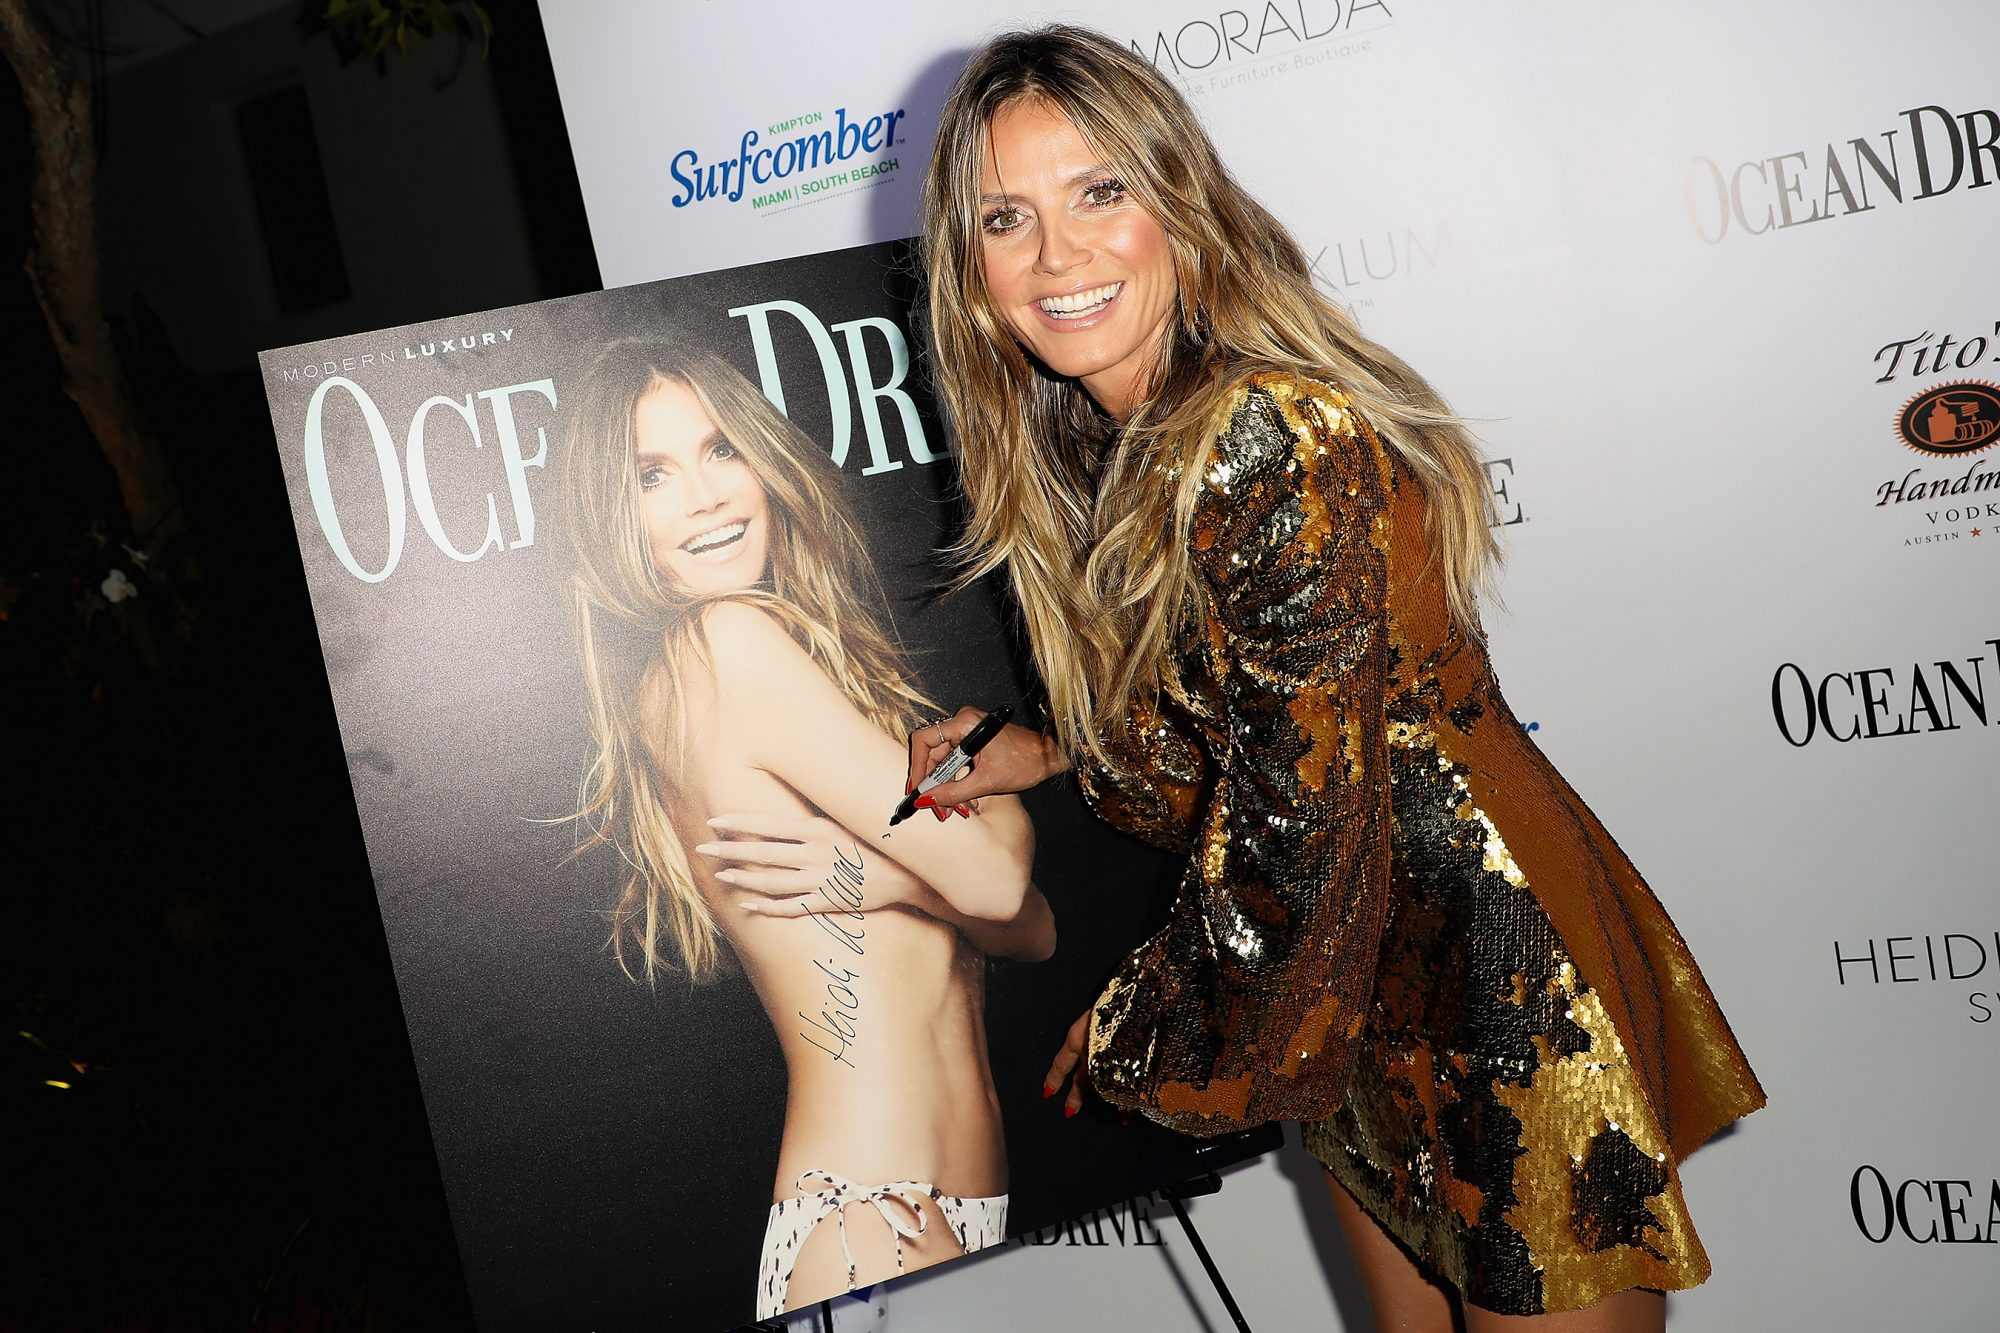 Ocean Drive's Magazine's 25th Anniversary Swimsuit Issue Celebration